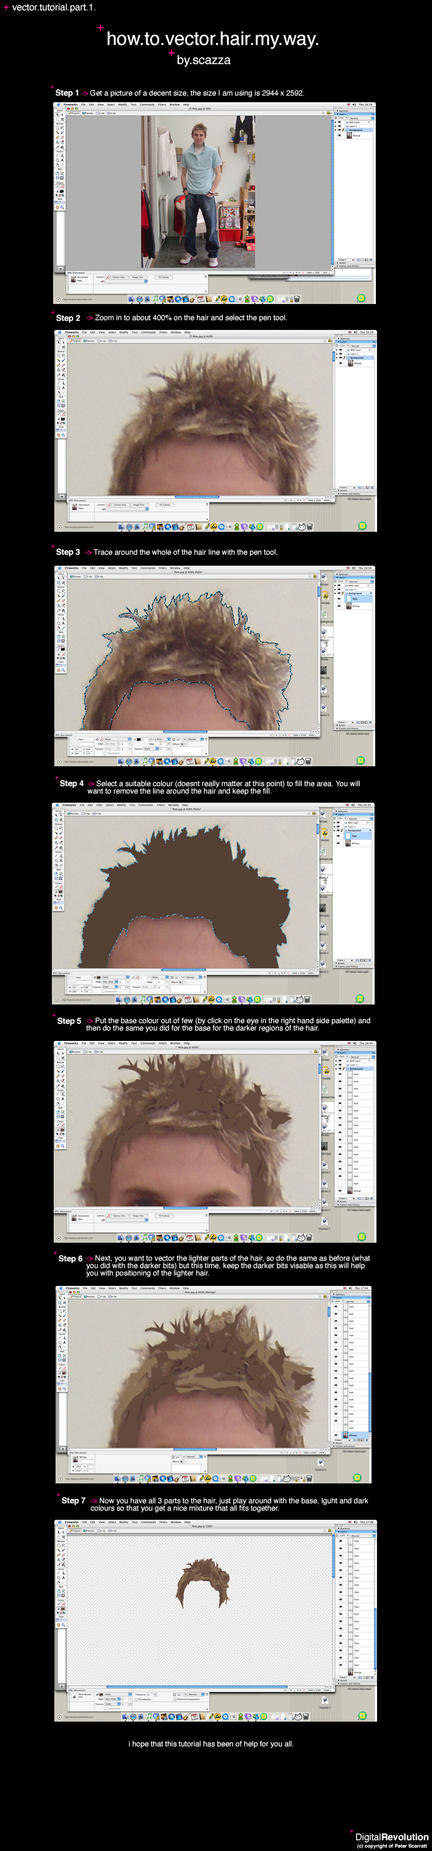 tutorial.vector.hair by Scazza